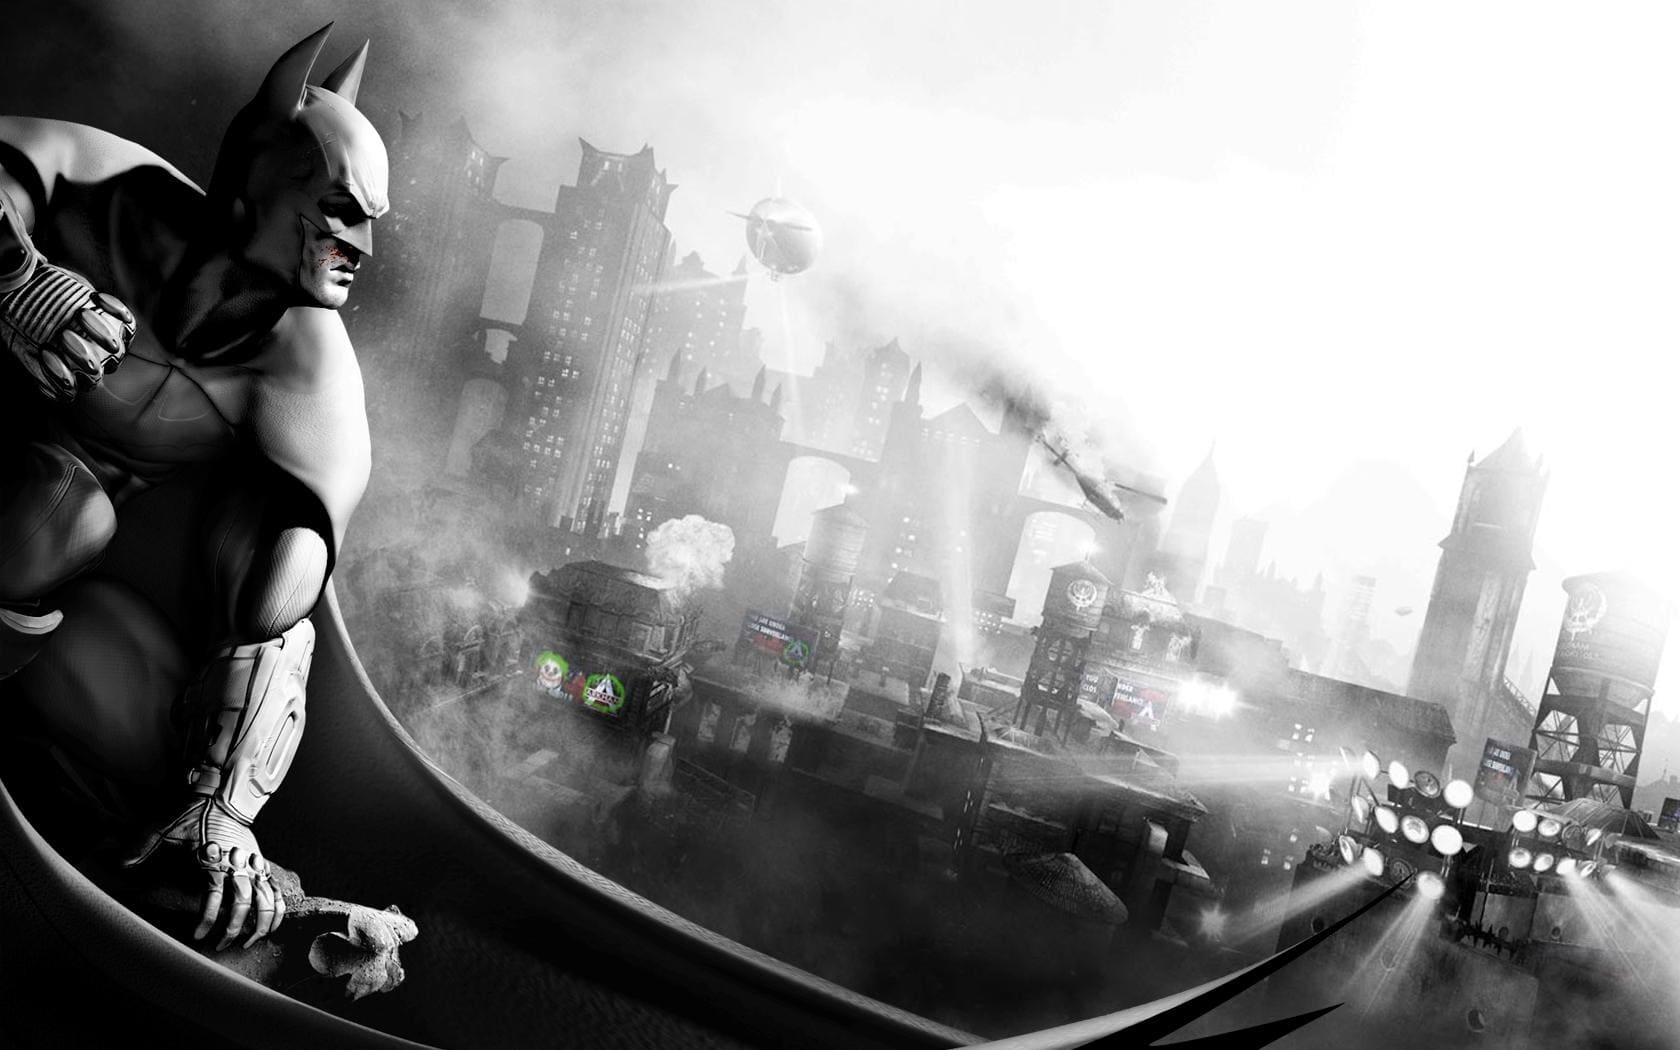 Batman: Arkham City Wallpaper